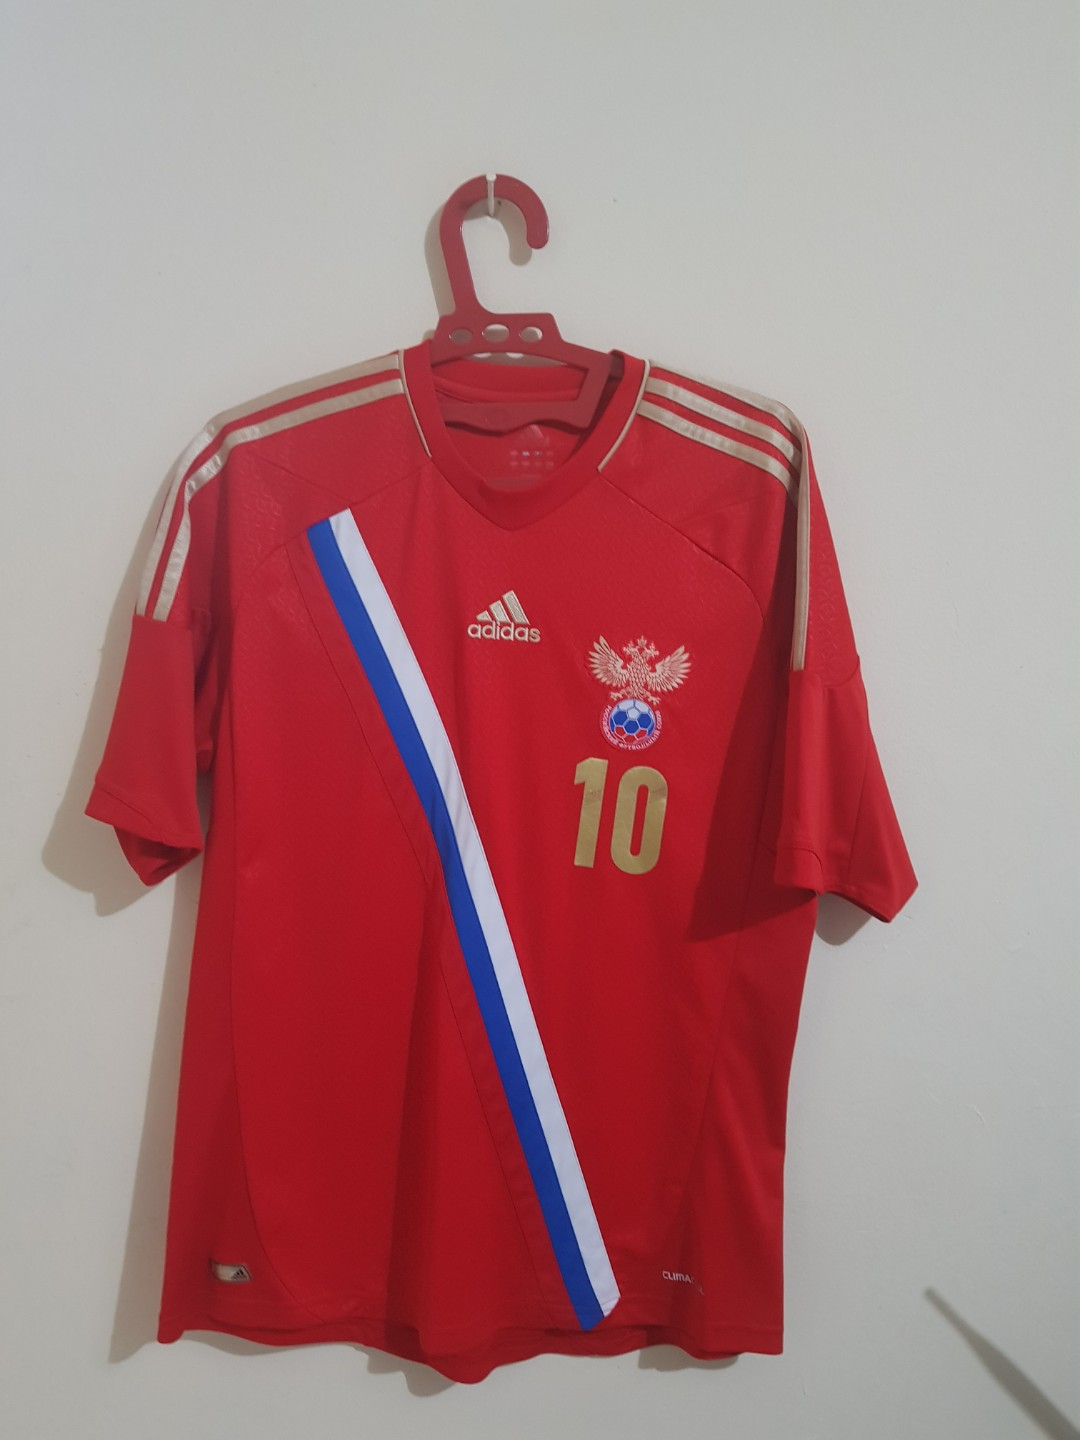 9e9ffb15 Adidas Russian 2012 Home Jersey, Men's Fashion, Men's Clothes on ...